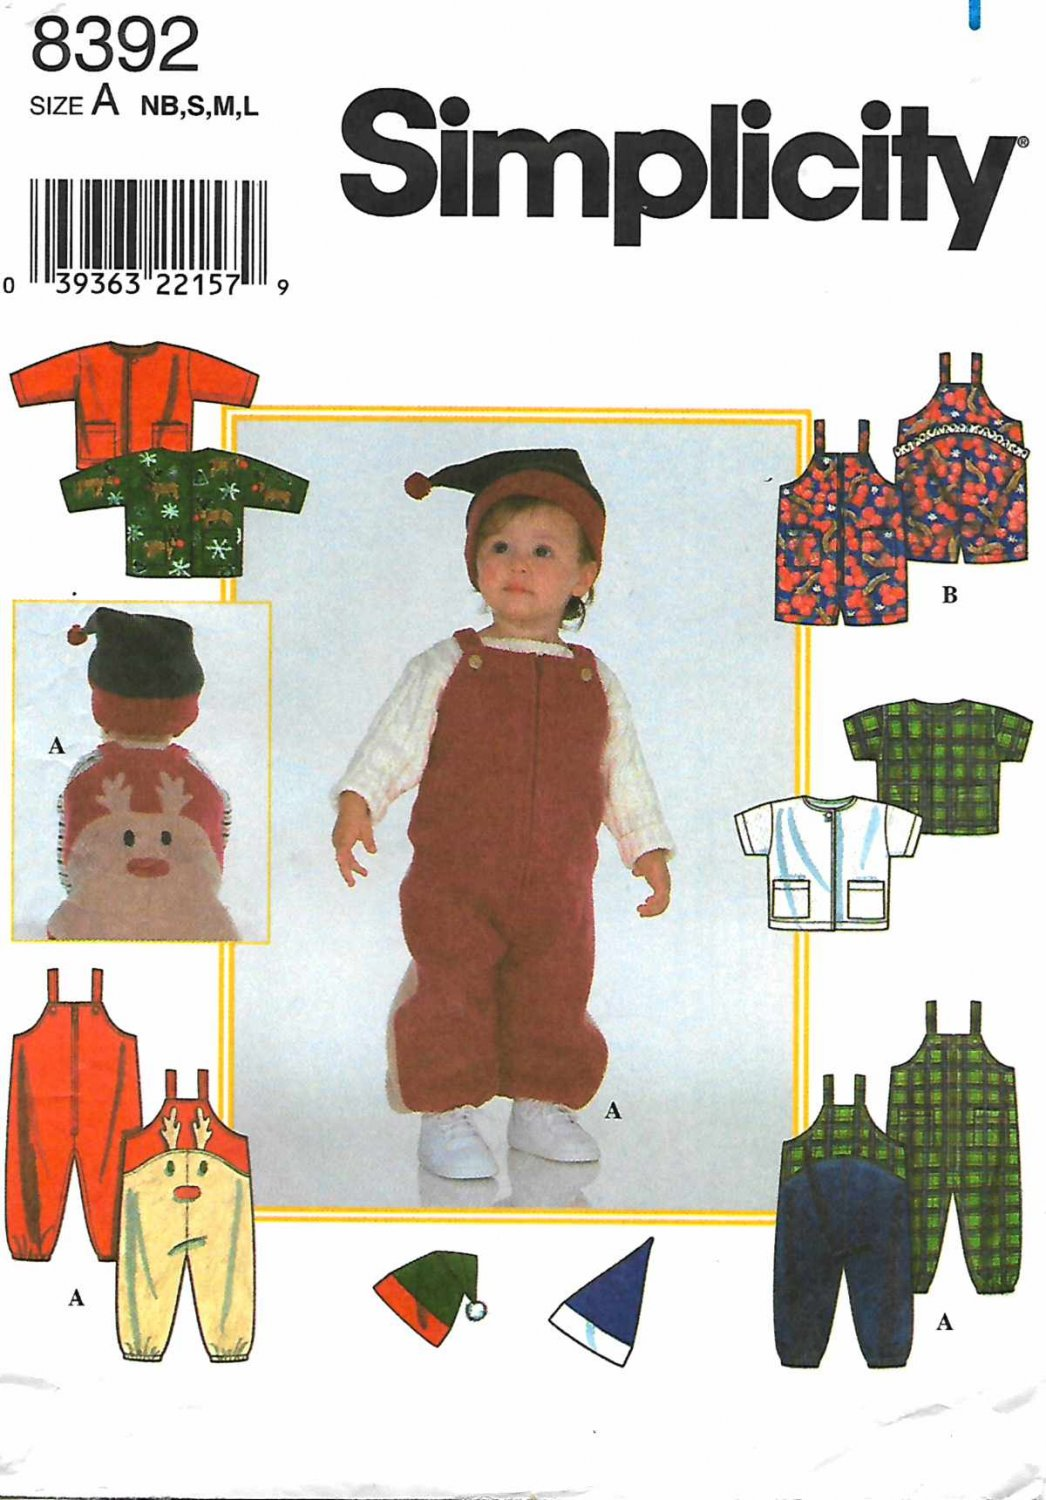 Simplicity Sewing Pattern 8392 Babies Sizes NB-L Romper Jacket Knit Hat Reindeer Overalls